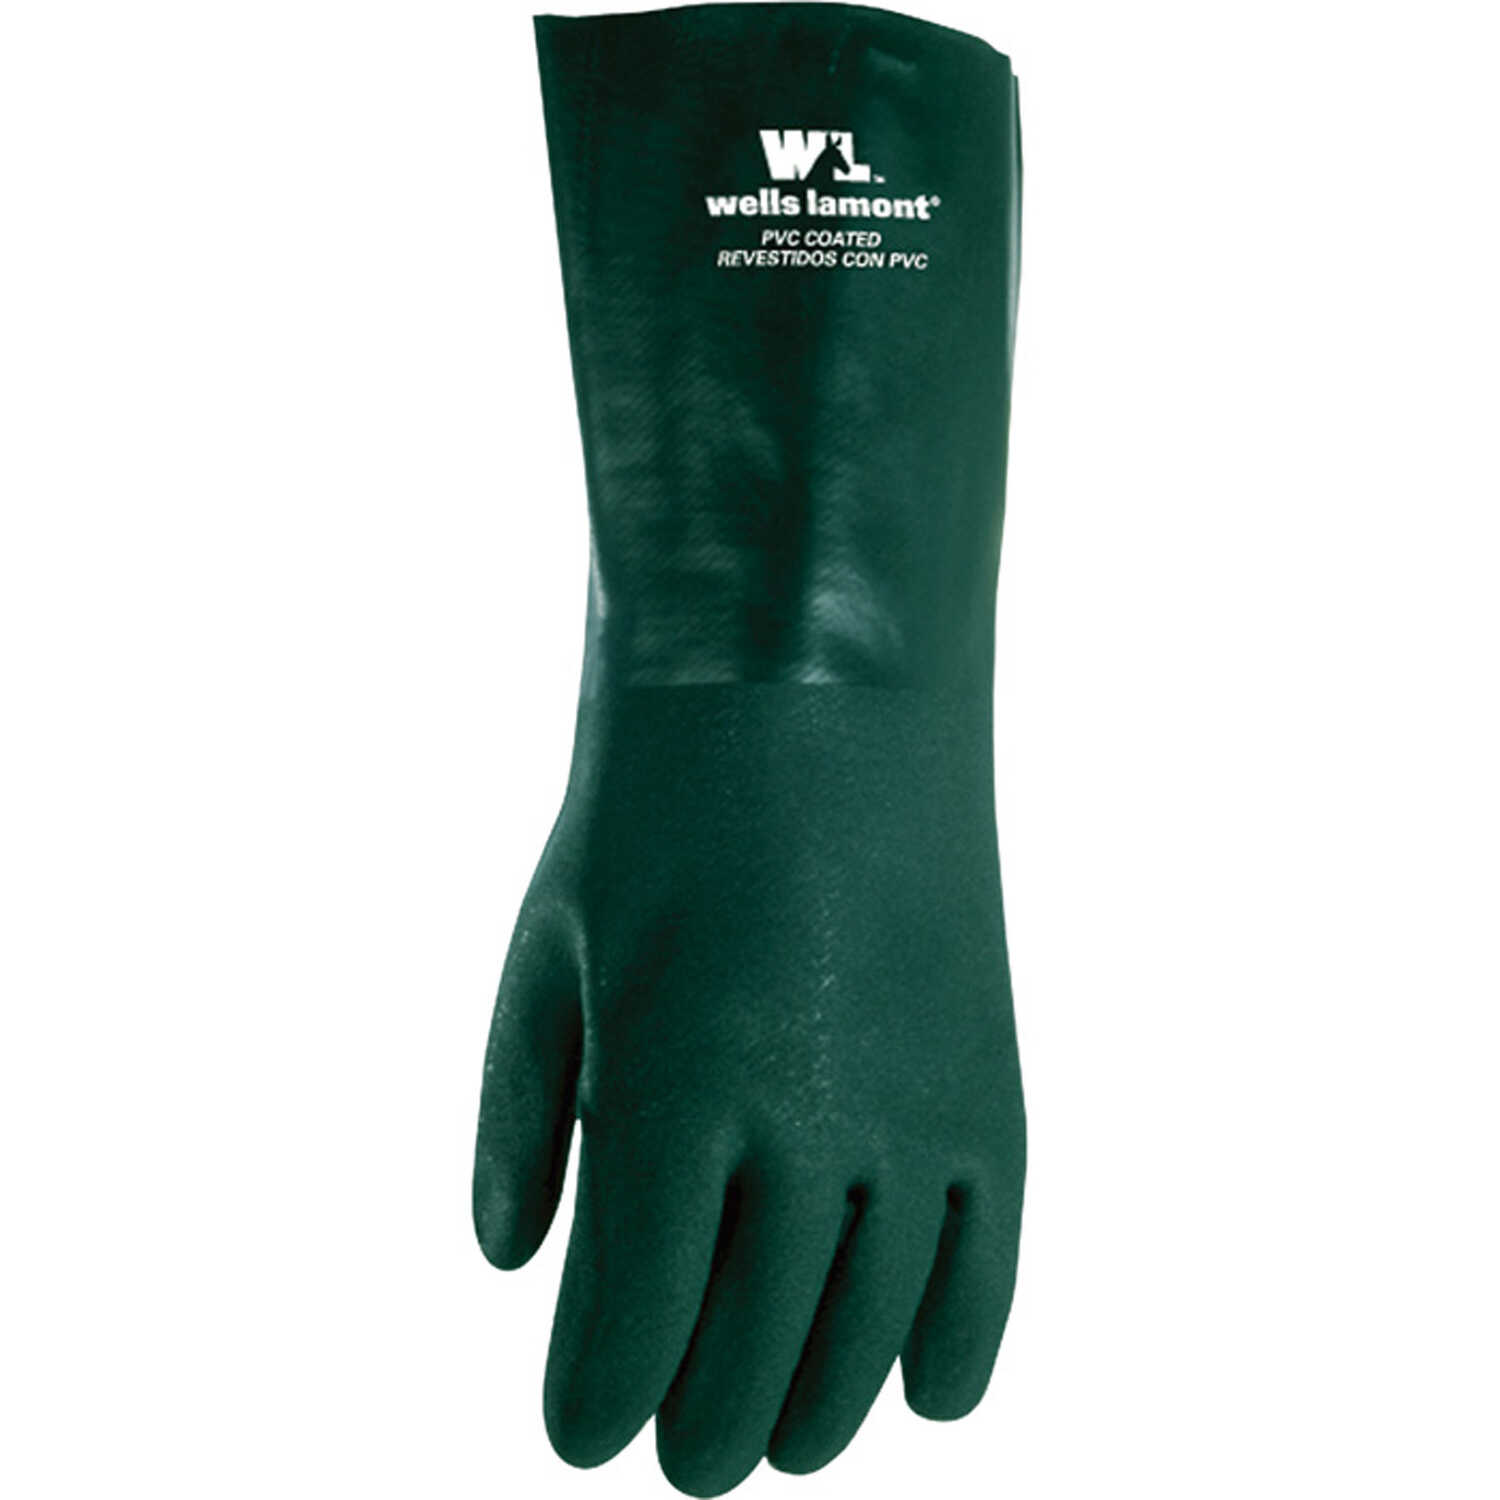 Wells Lamont  Men's  Indoor/Outdoor  PVC  Chemical Gloves  Green  L